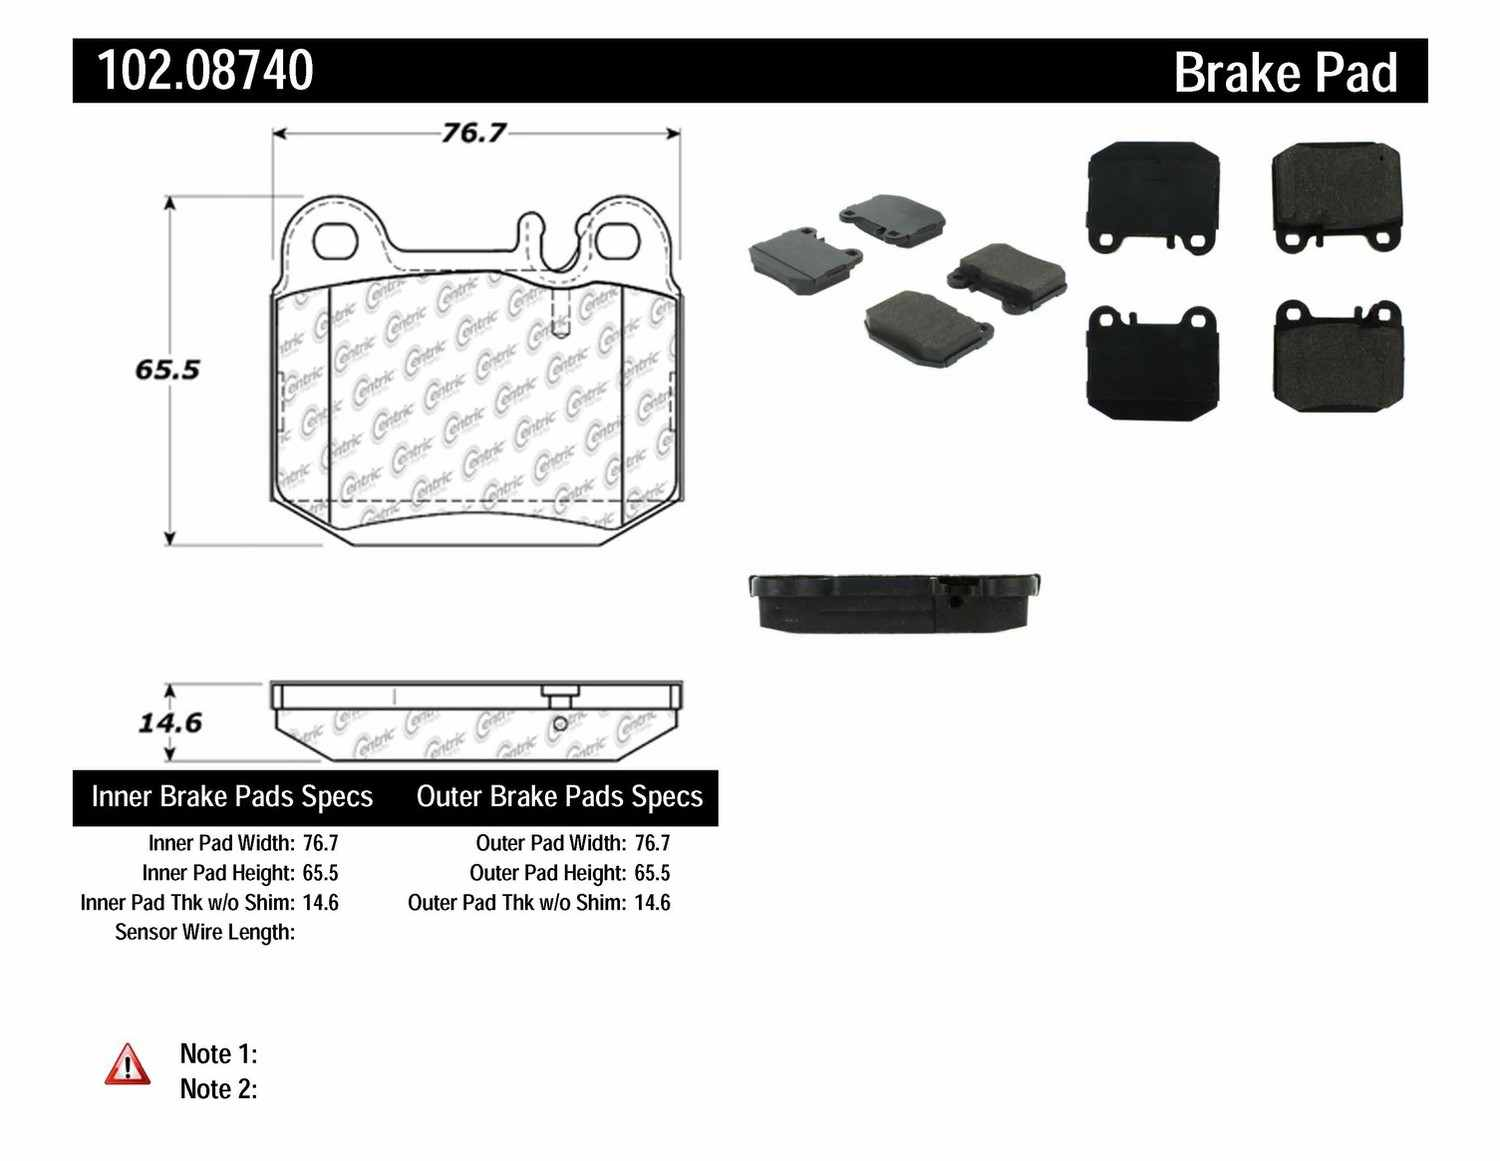 C-TEK BY CENTRIC - C-TEK Metallic Brake Pads (Rear) - CTK 102.08740